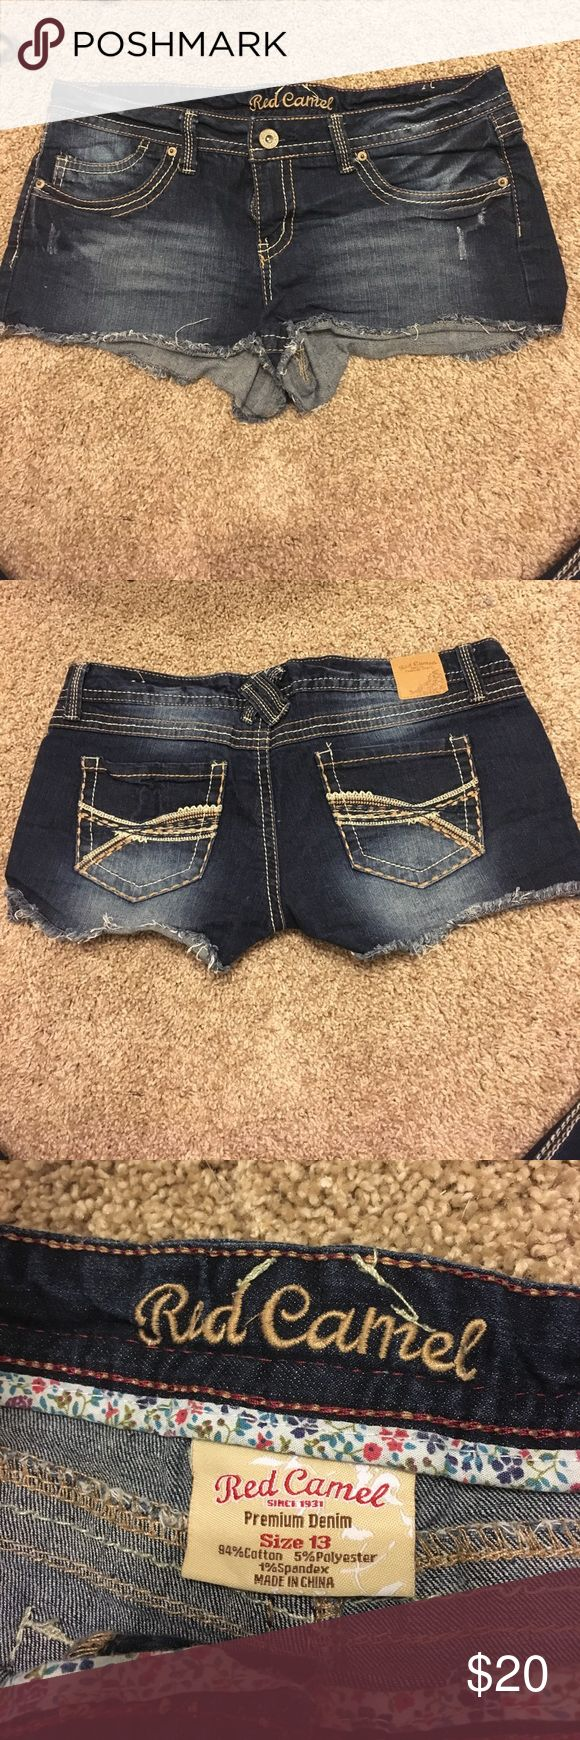 Red Camel Booty shorts size 13 They were worn for one summer. Good condition. VERY short. Feel free to make offer Red Camel Shorts Jean Shorts